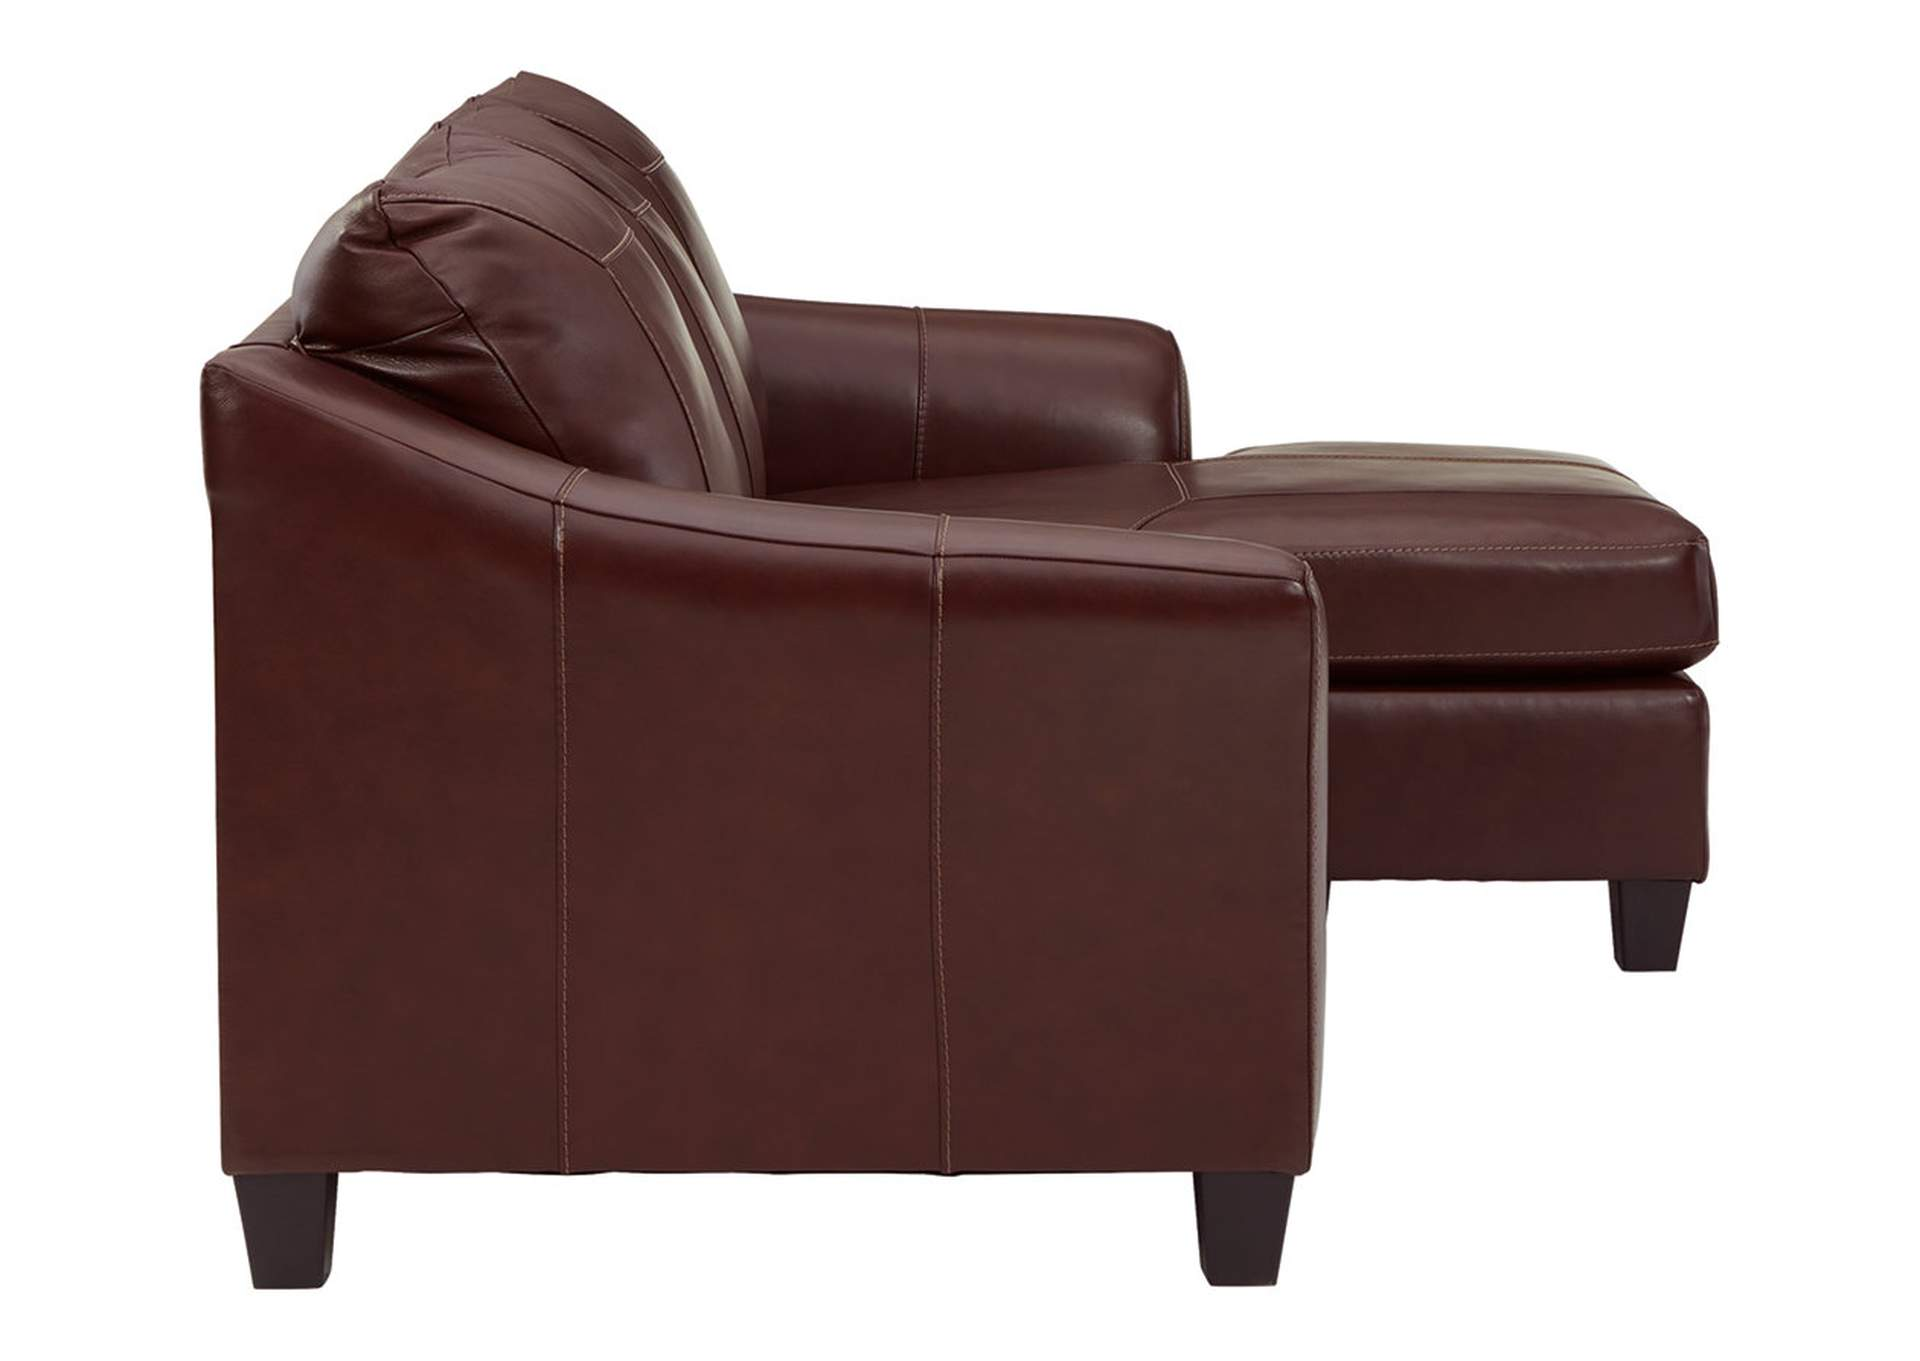 Fortney Mahogany Sofa Chaise,Signature Design By Ashley